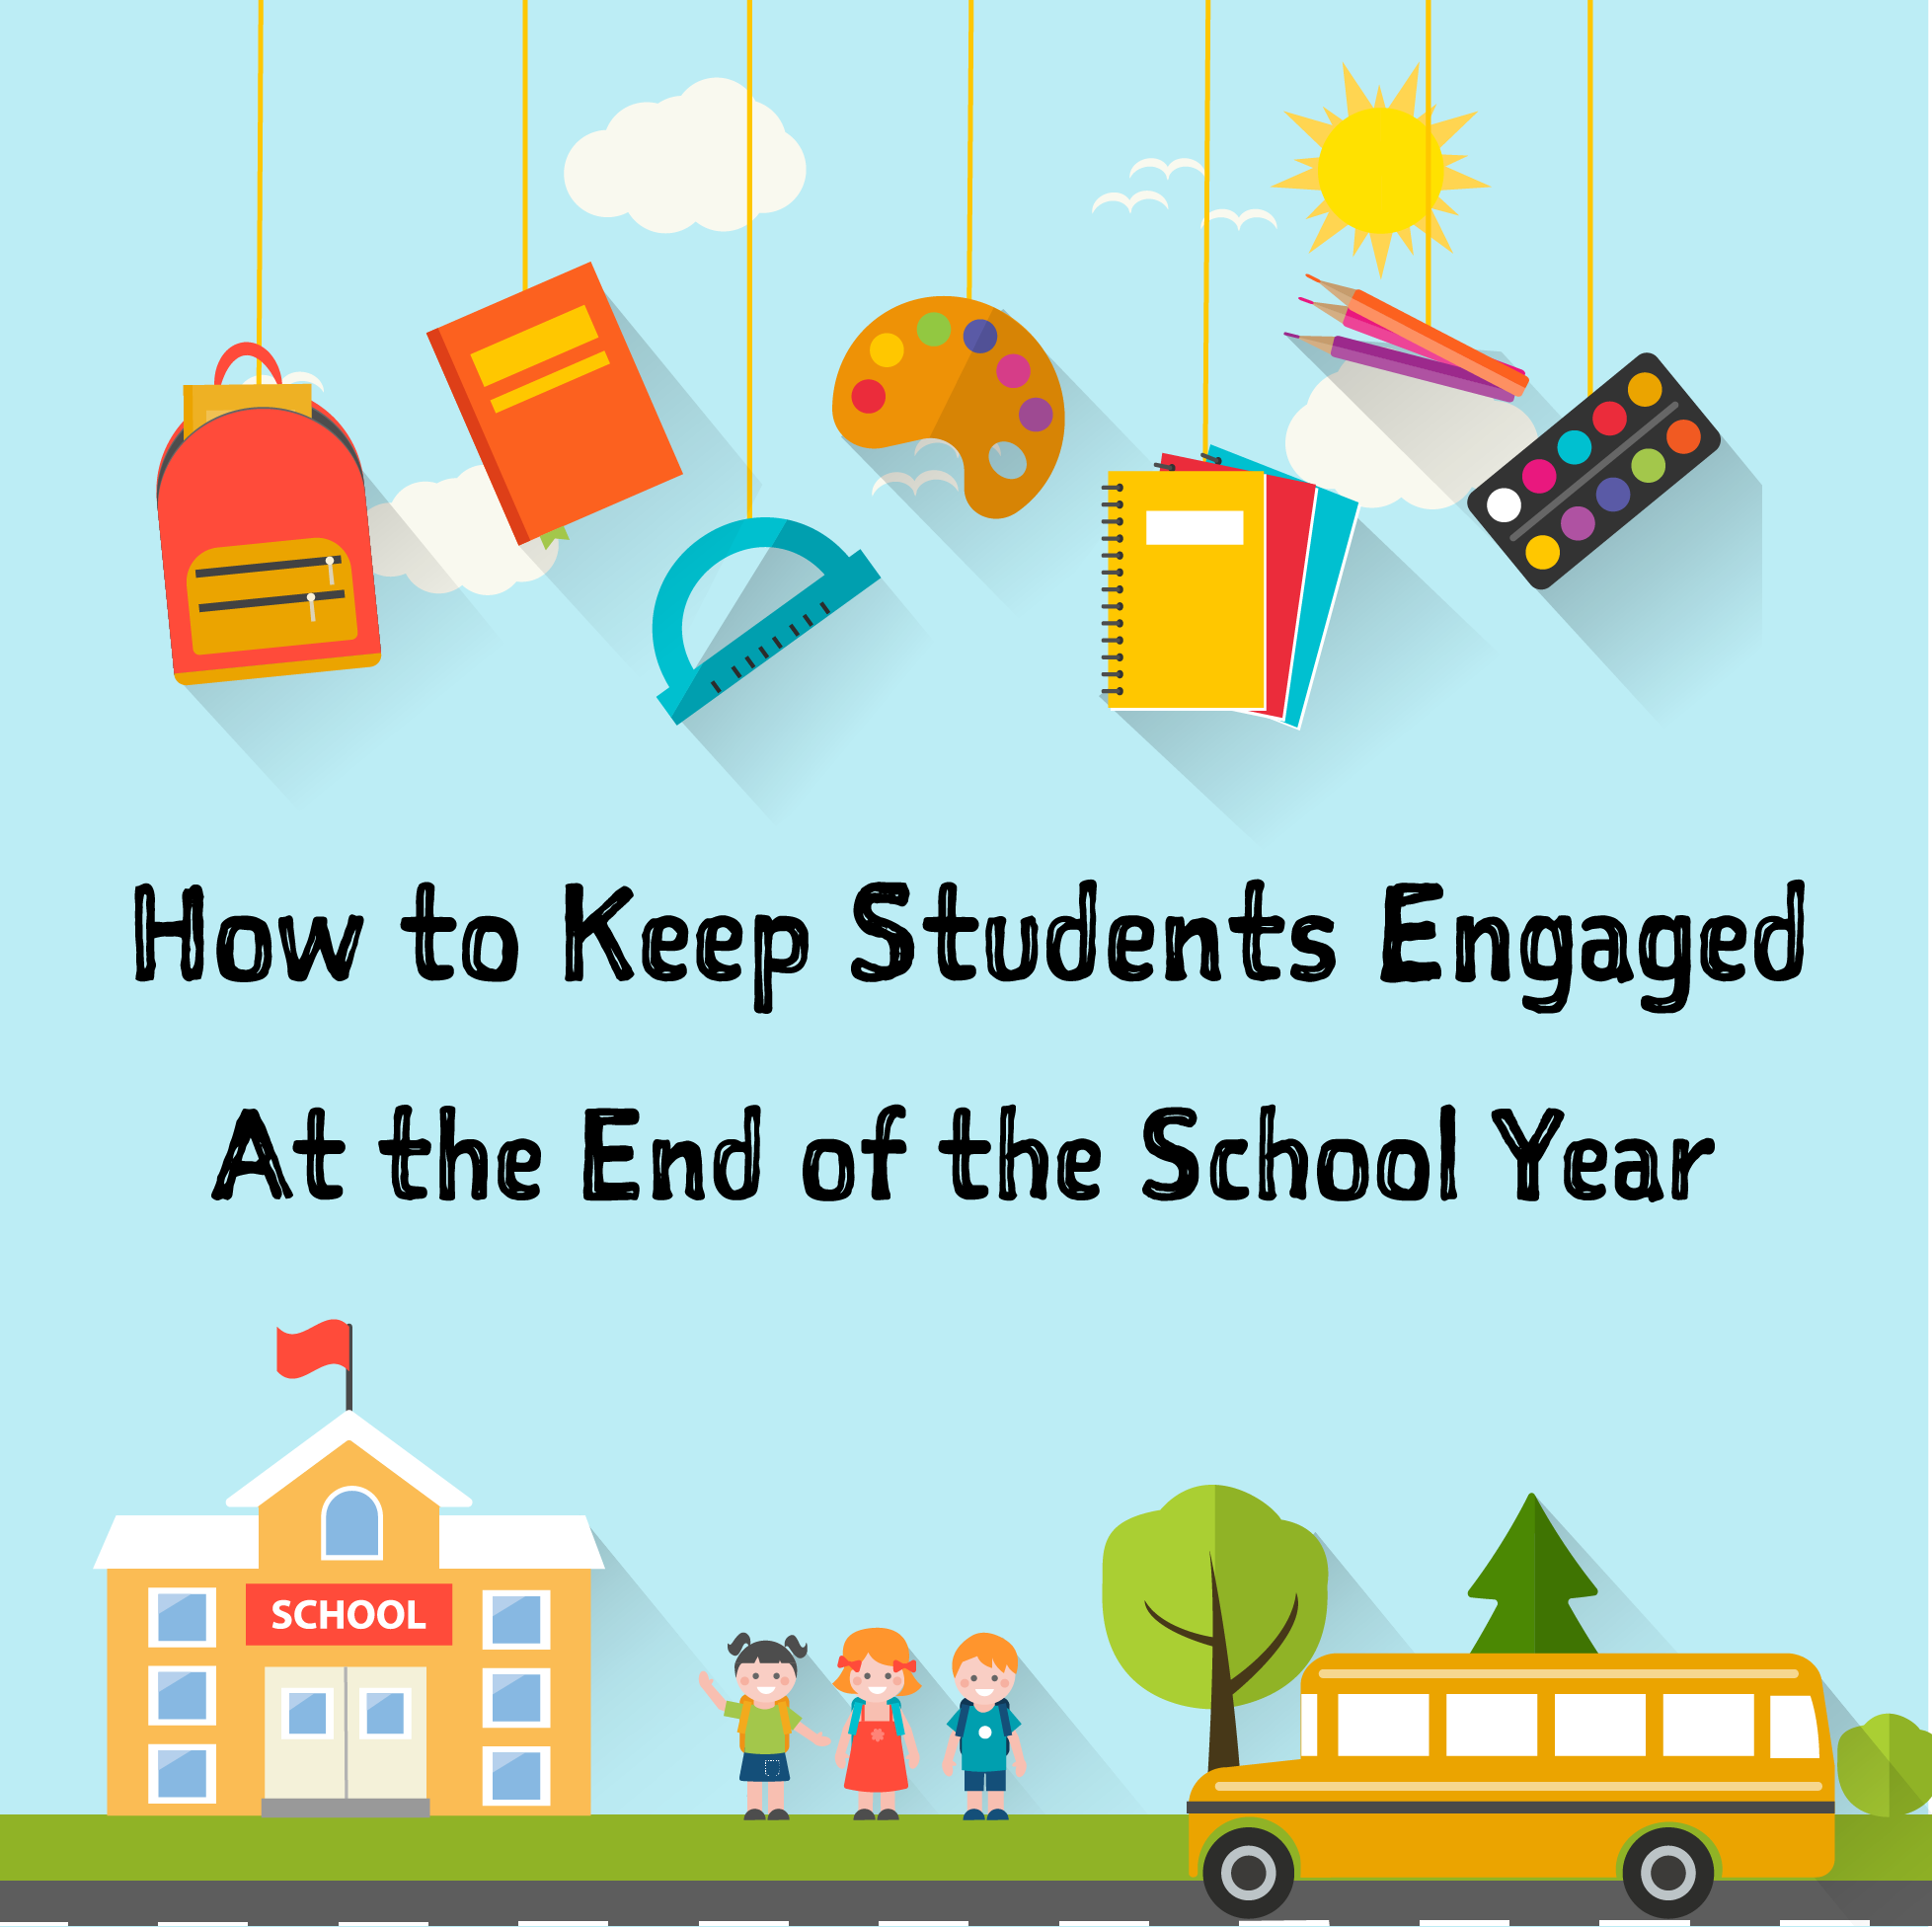 Strategies for Keeping Students Engaged at the End of the Year